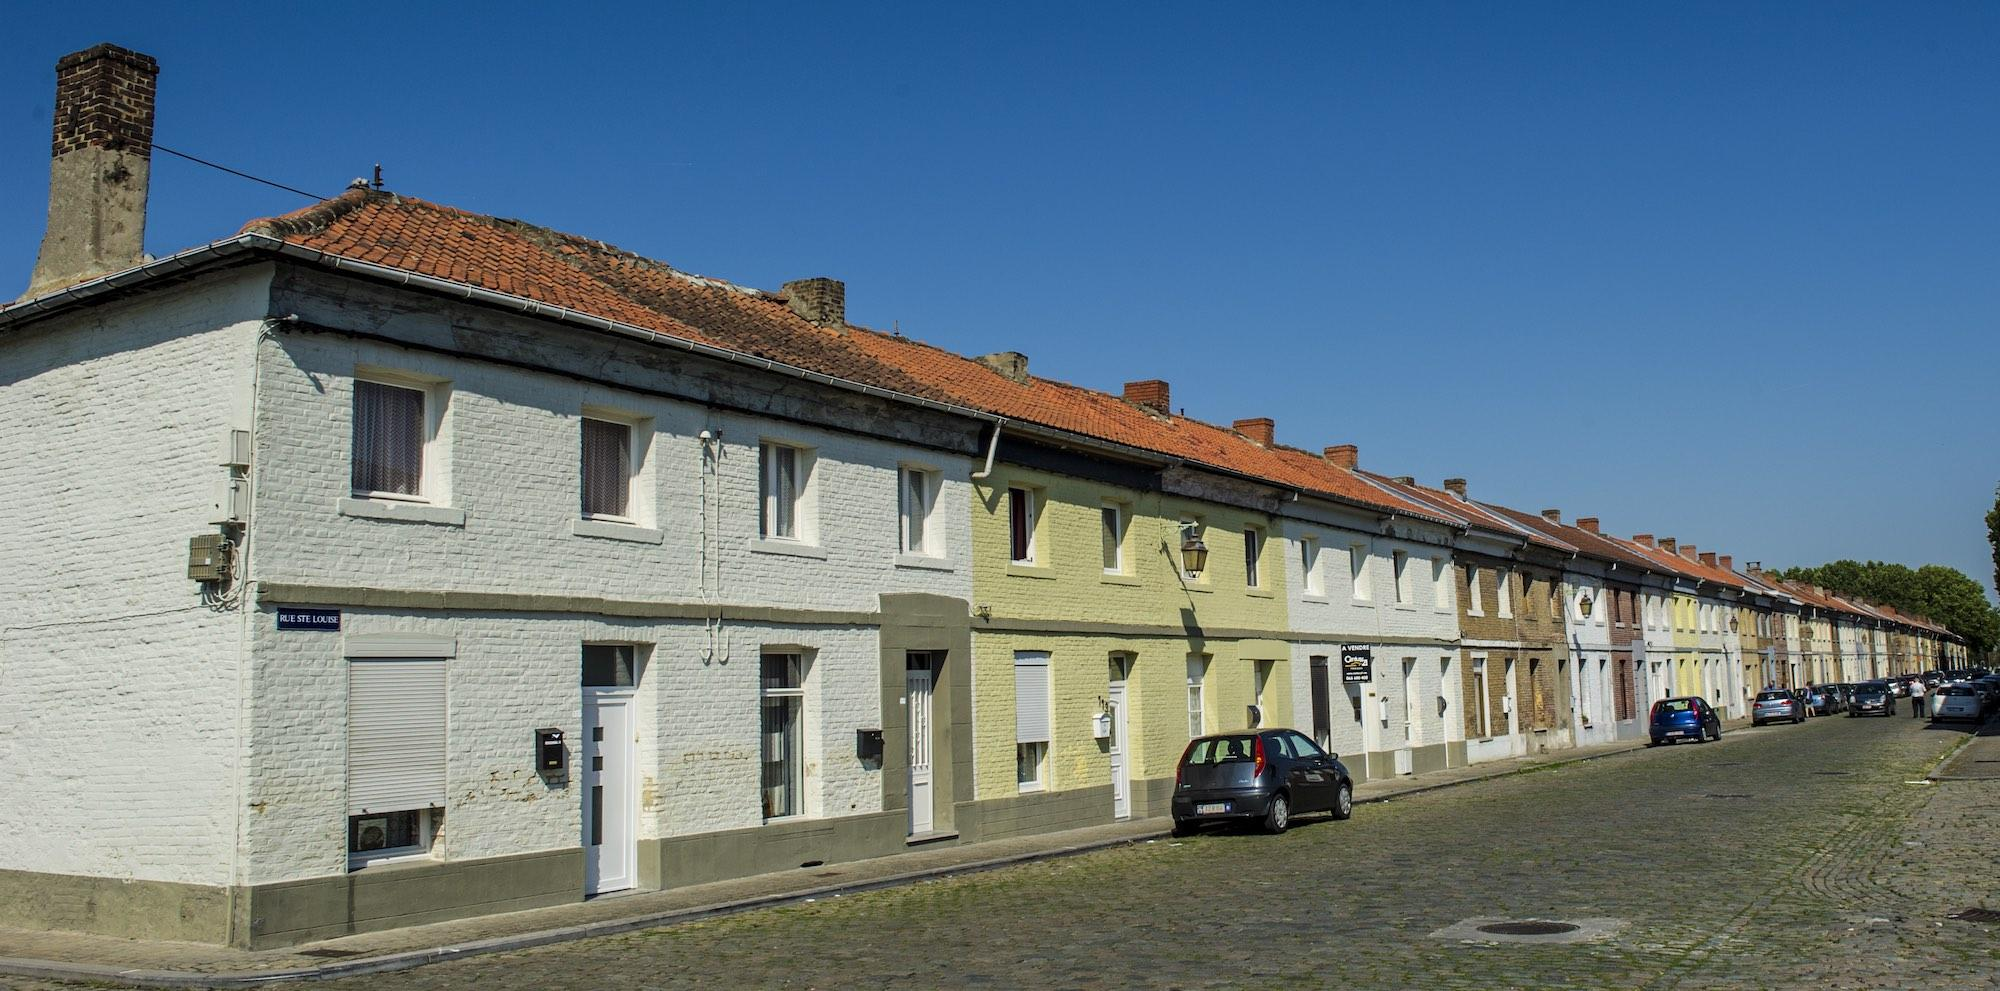 A terraced housing district with 450 houses was built by the company, providing Grand-Hornu colliery workers with more comfortable living conditions. – © Grégory Mathelot / Visit Mons